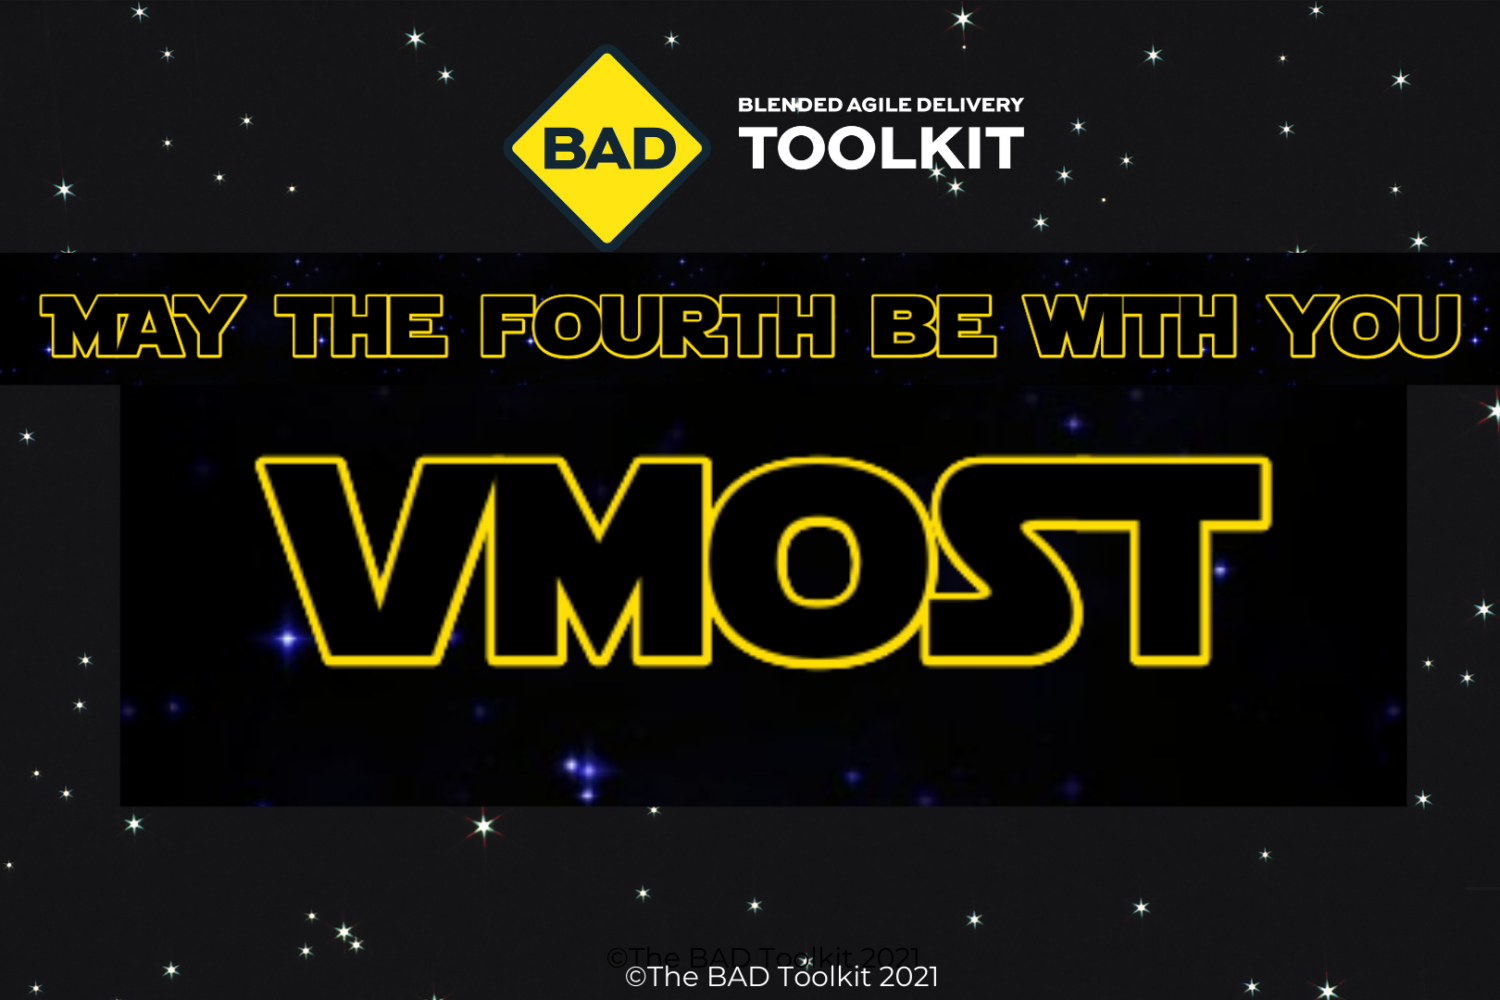 May the 4th VMOST